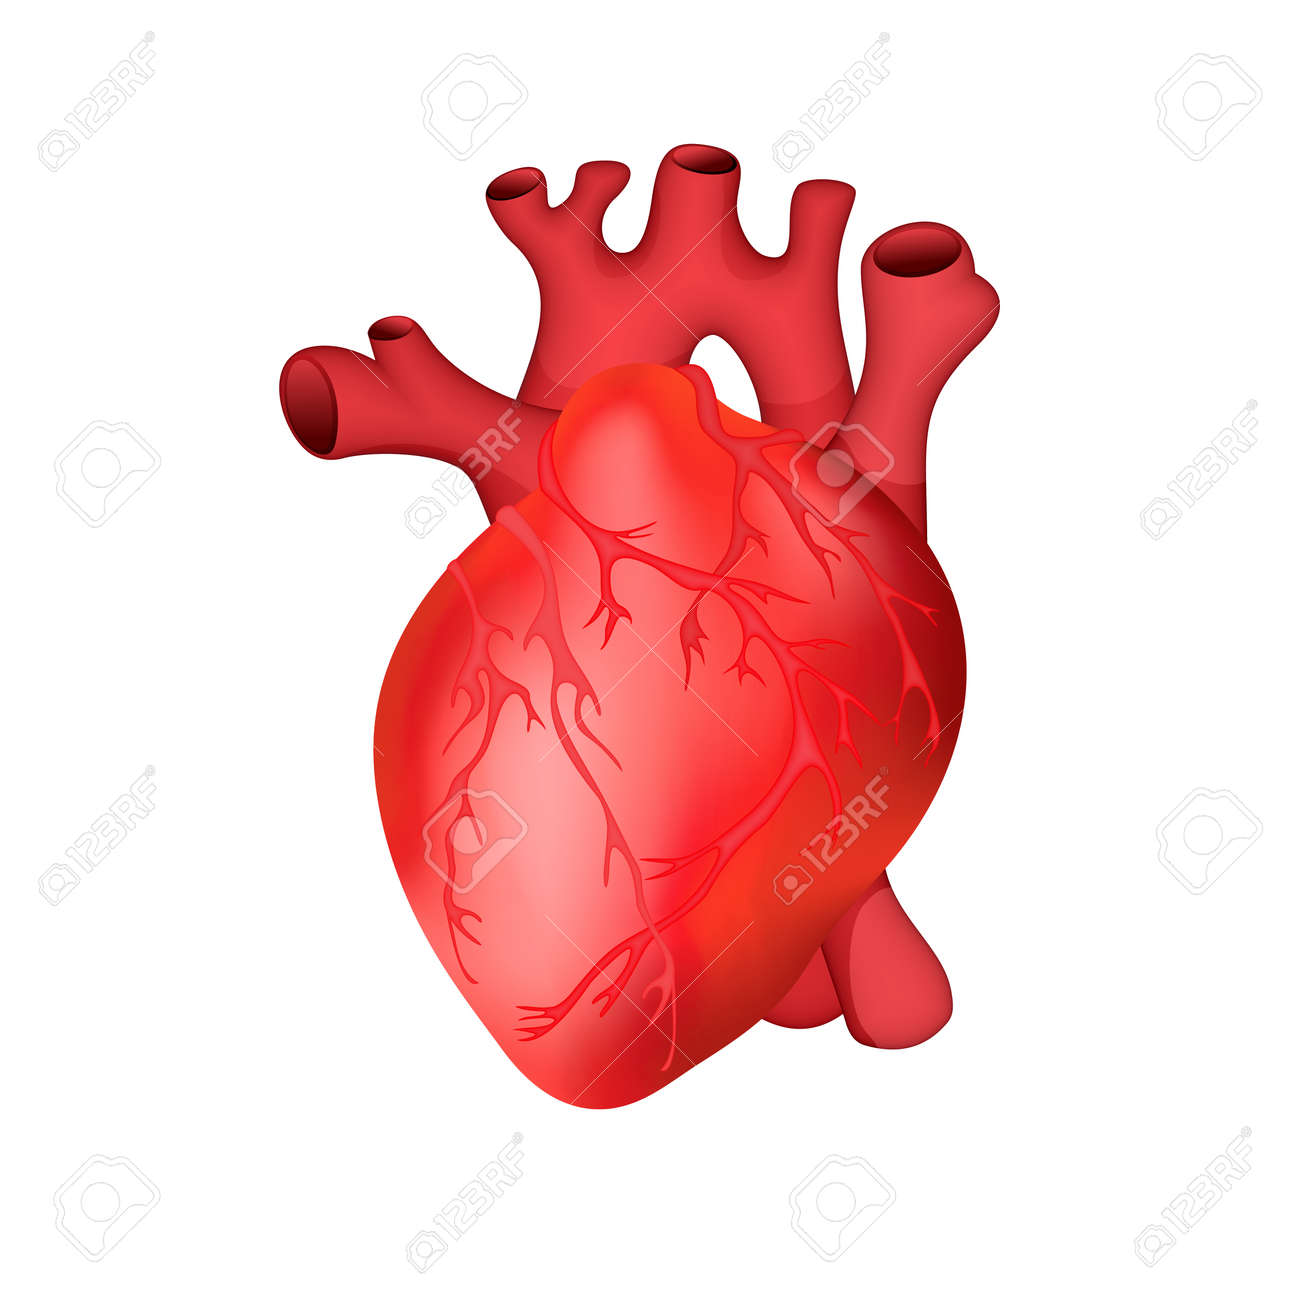 anatomically accurate human heart vector illustration royalty free rh 123rf com human heart vector image human heart vector art